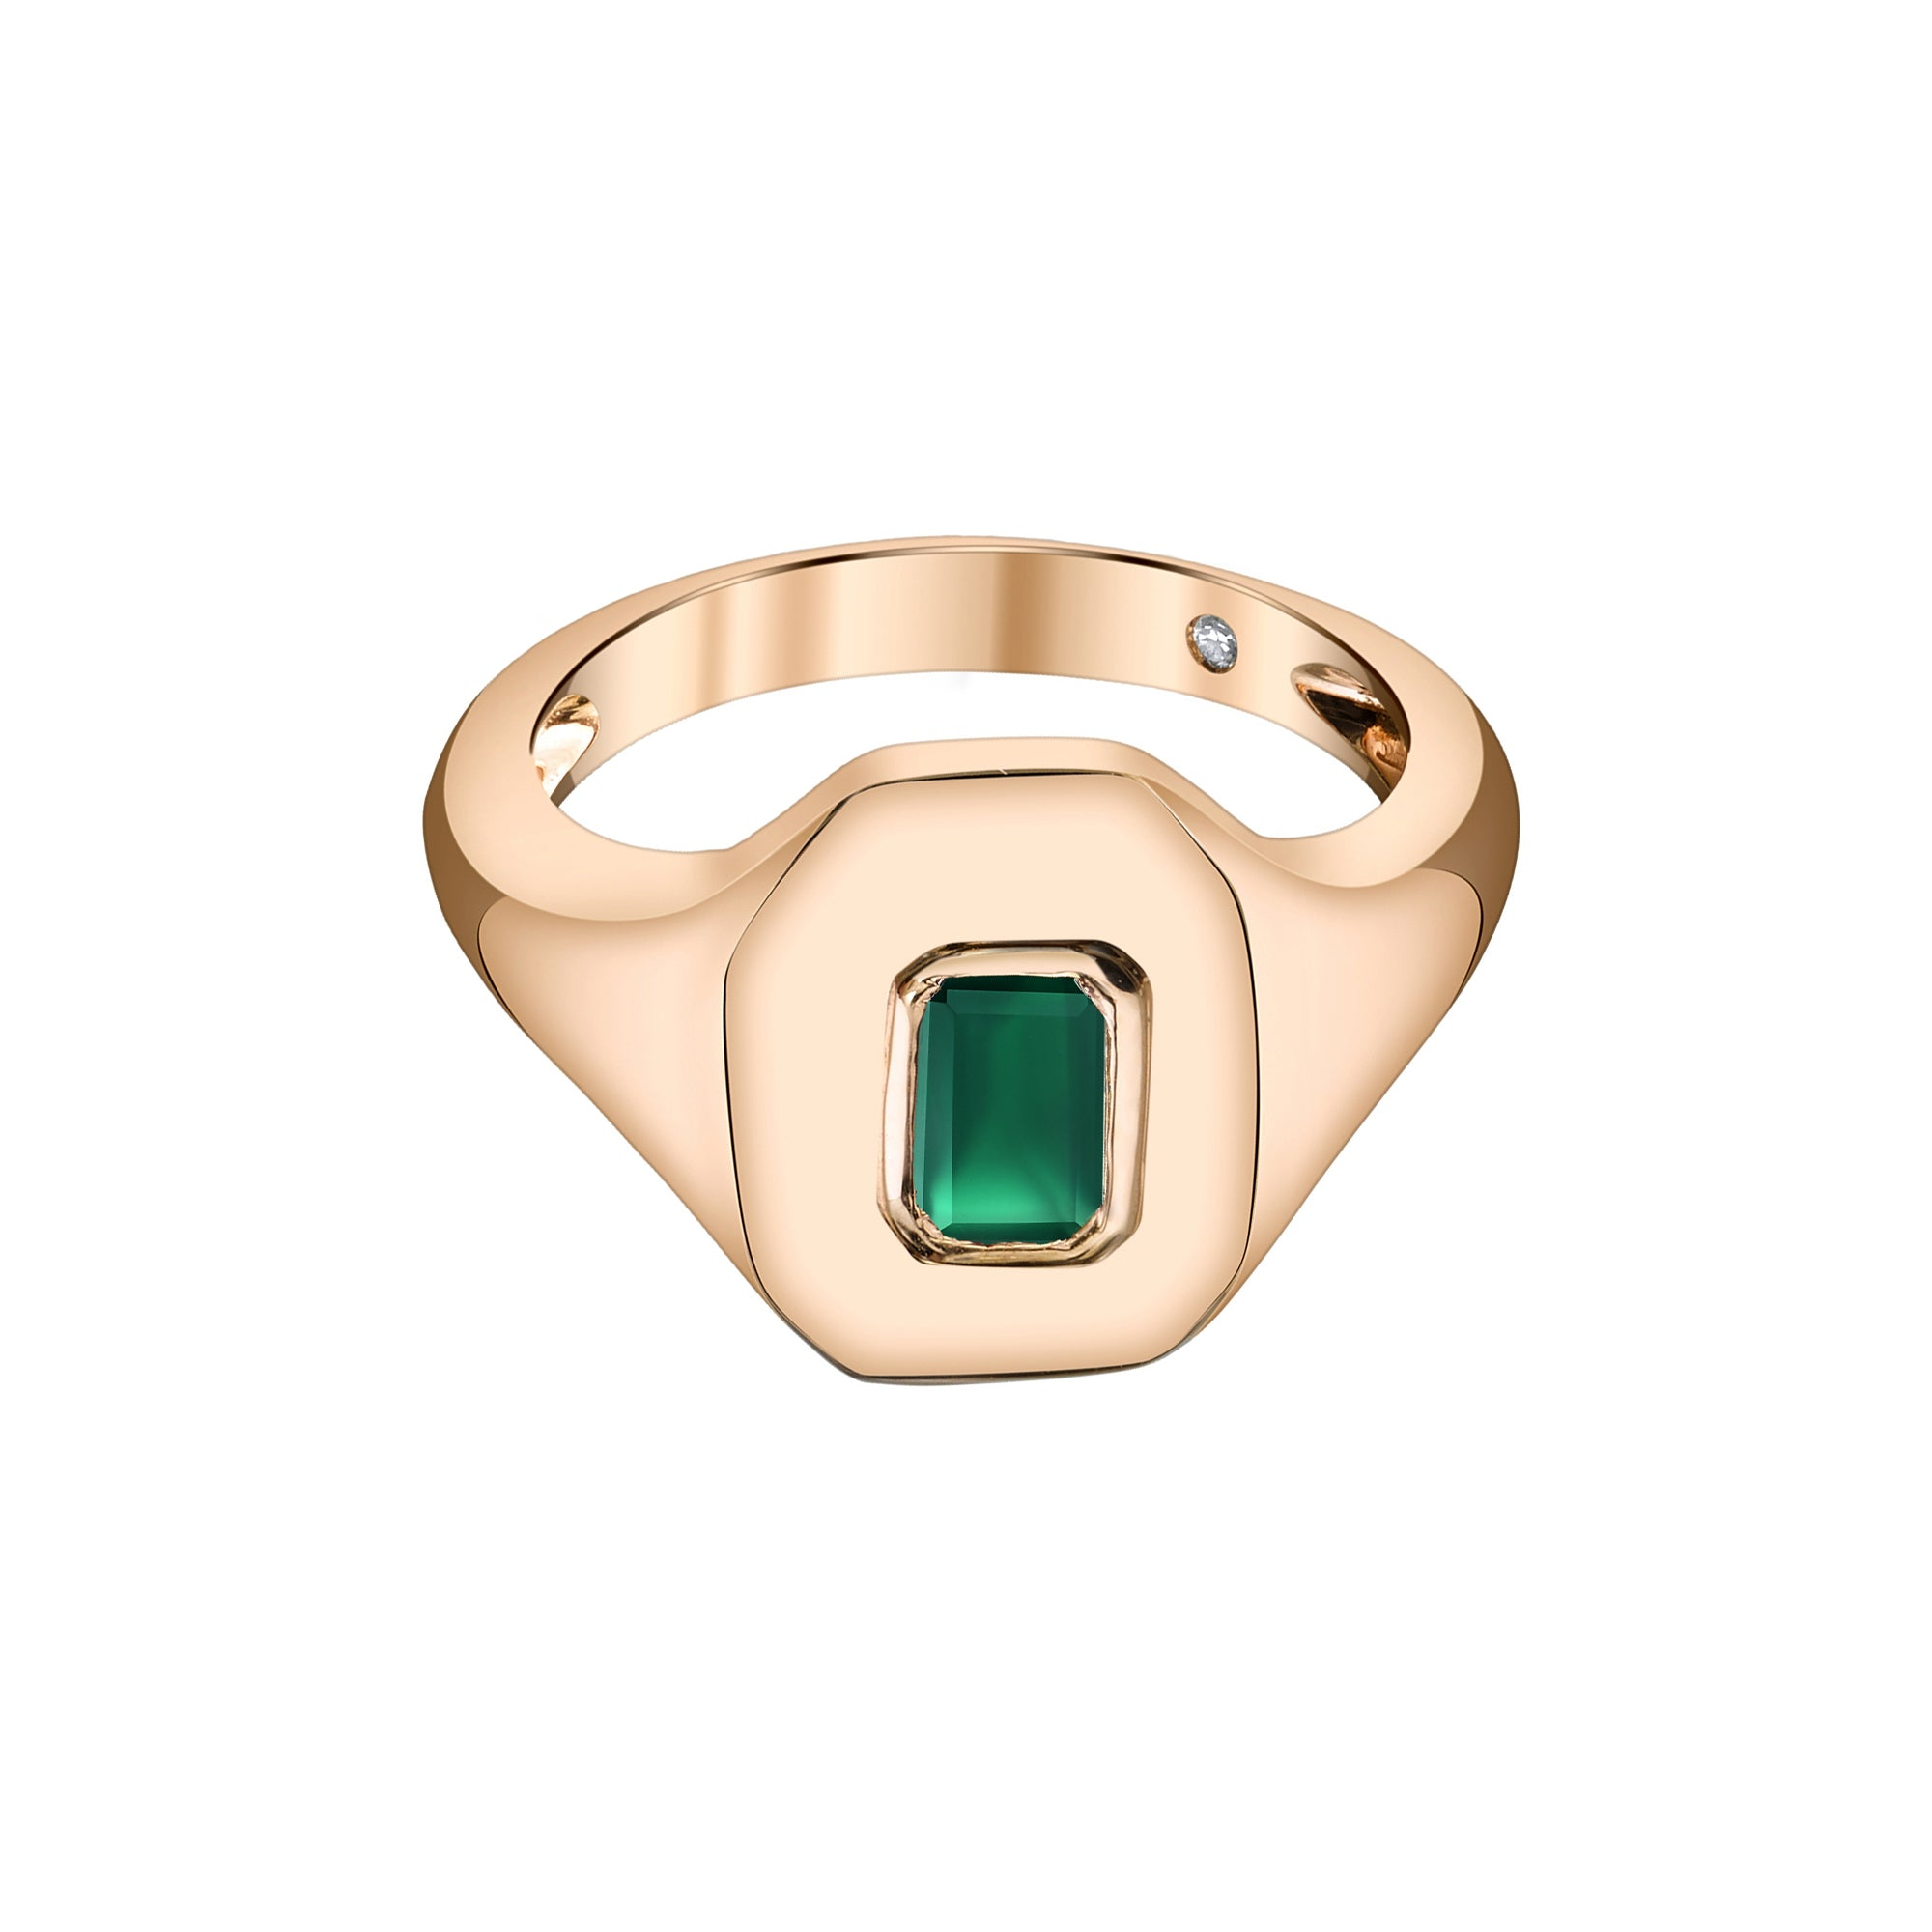 Emerald Baguette Pinky Ring by Shay for Broken English Jewelry